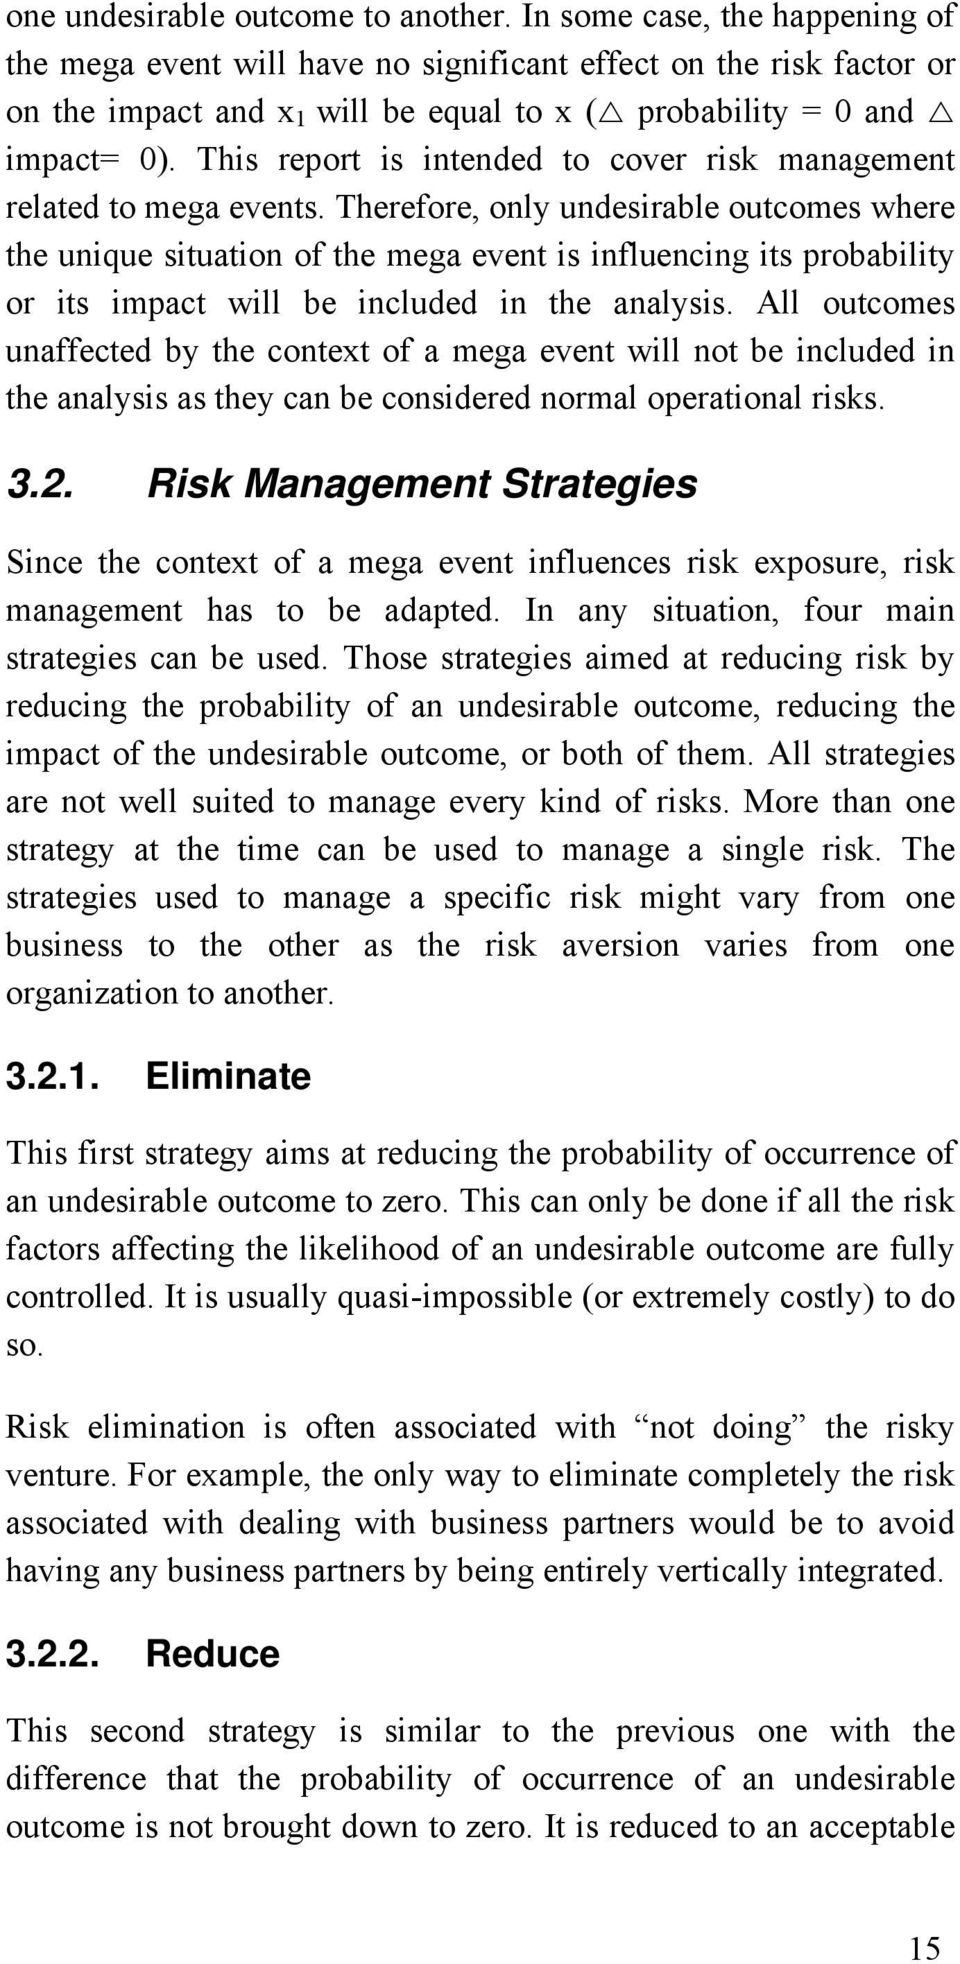 This report is intended to cover risk management related to mega events.